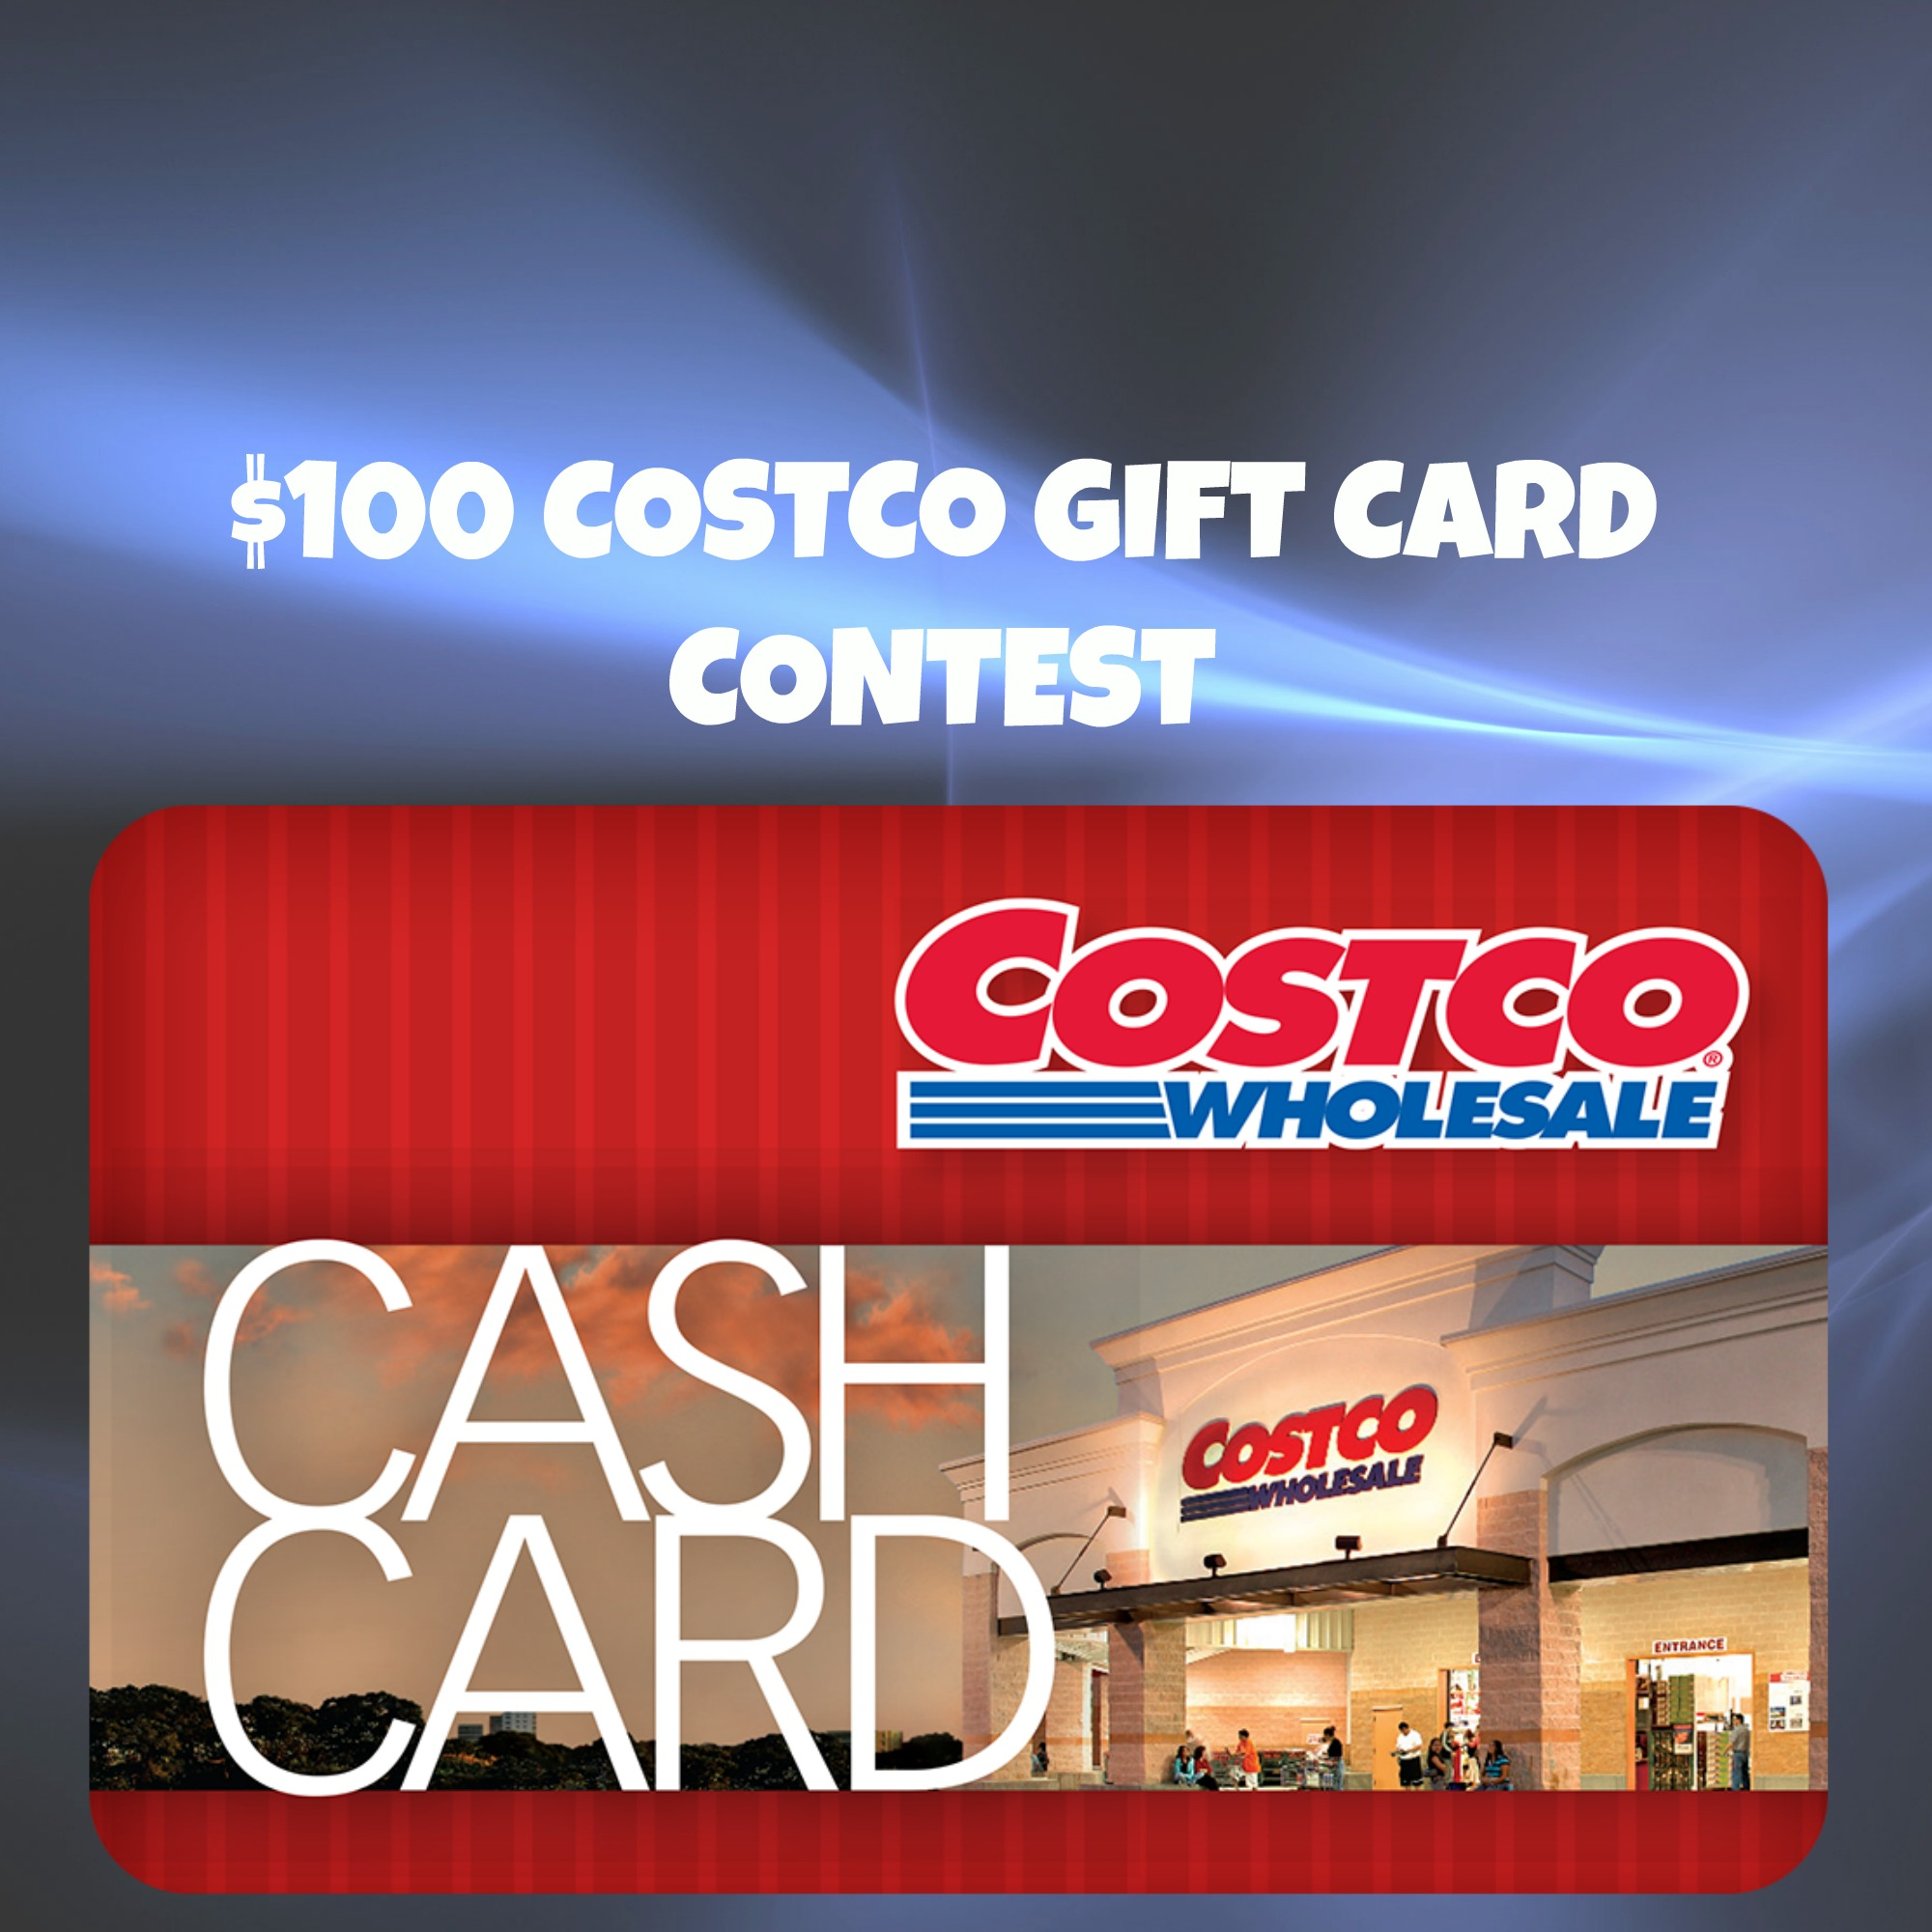 $100 COSTCO GIFT CARD CONTEST